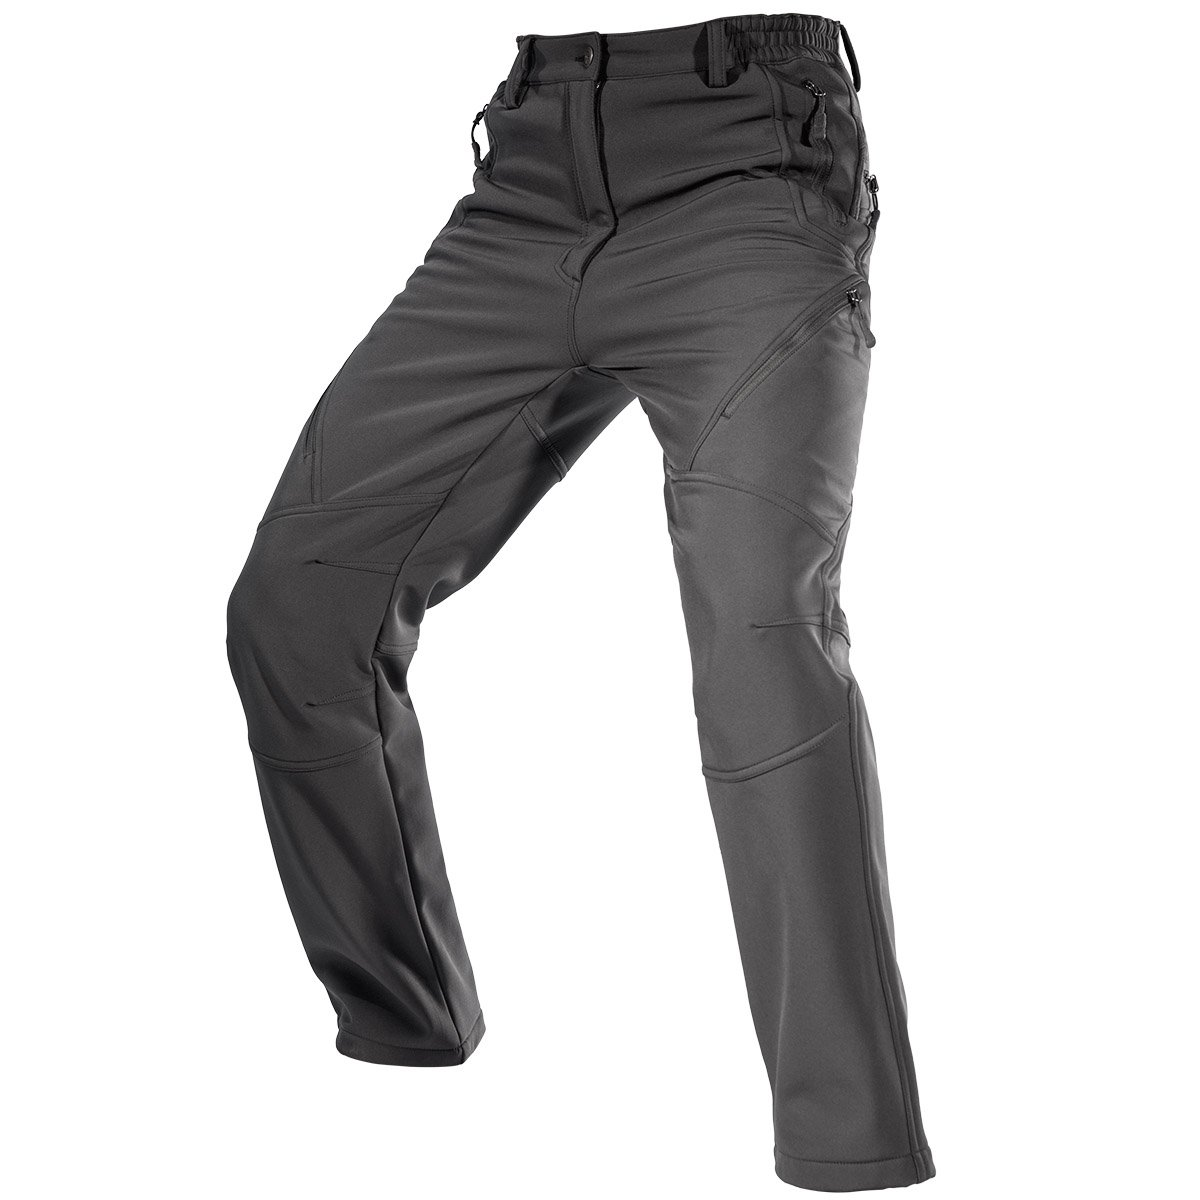 FREE SOLDIER Men's Fleece Lined Water Repellent Softshell Snow Ski Pants with Zipper Pockets F & S Co. Ltd